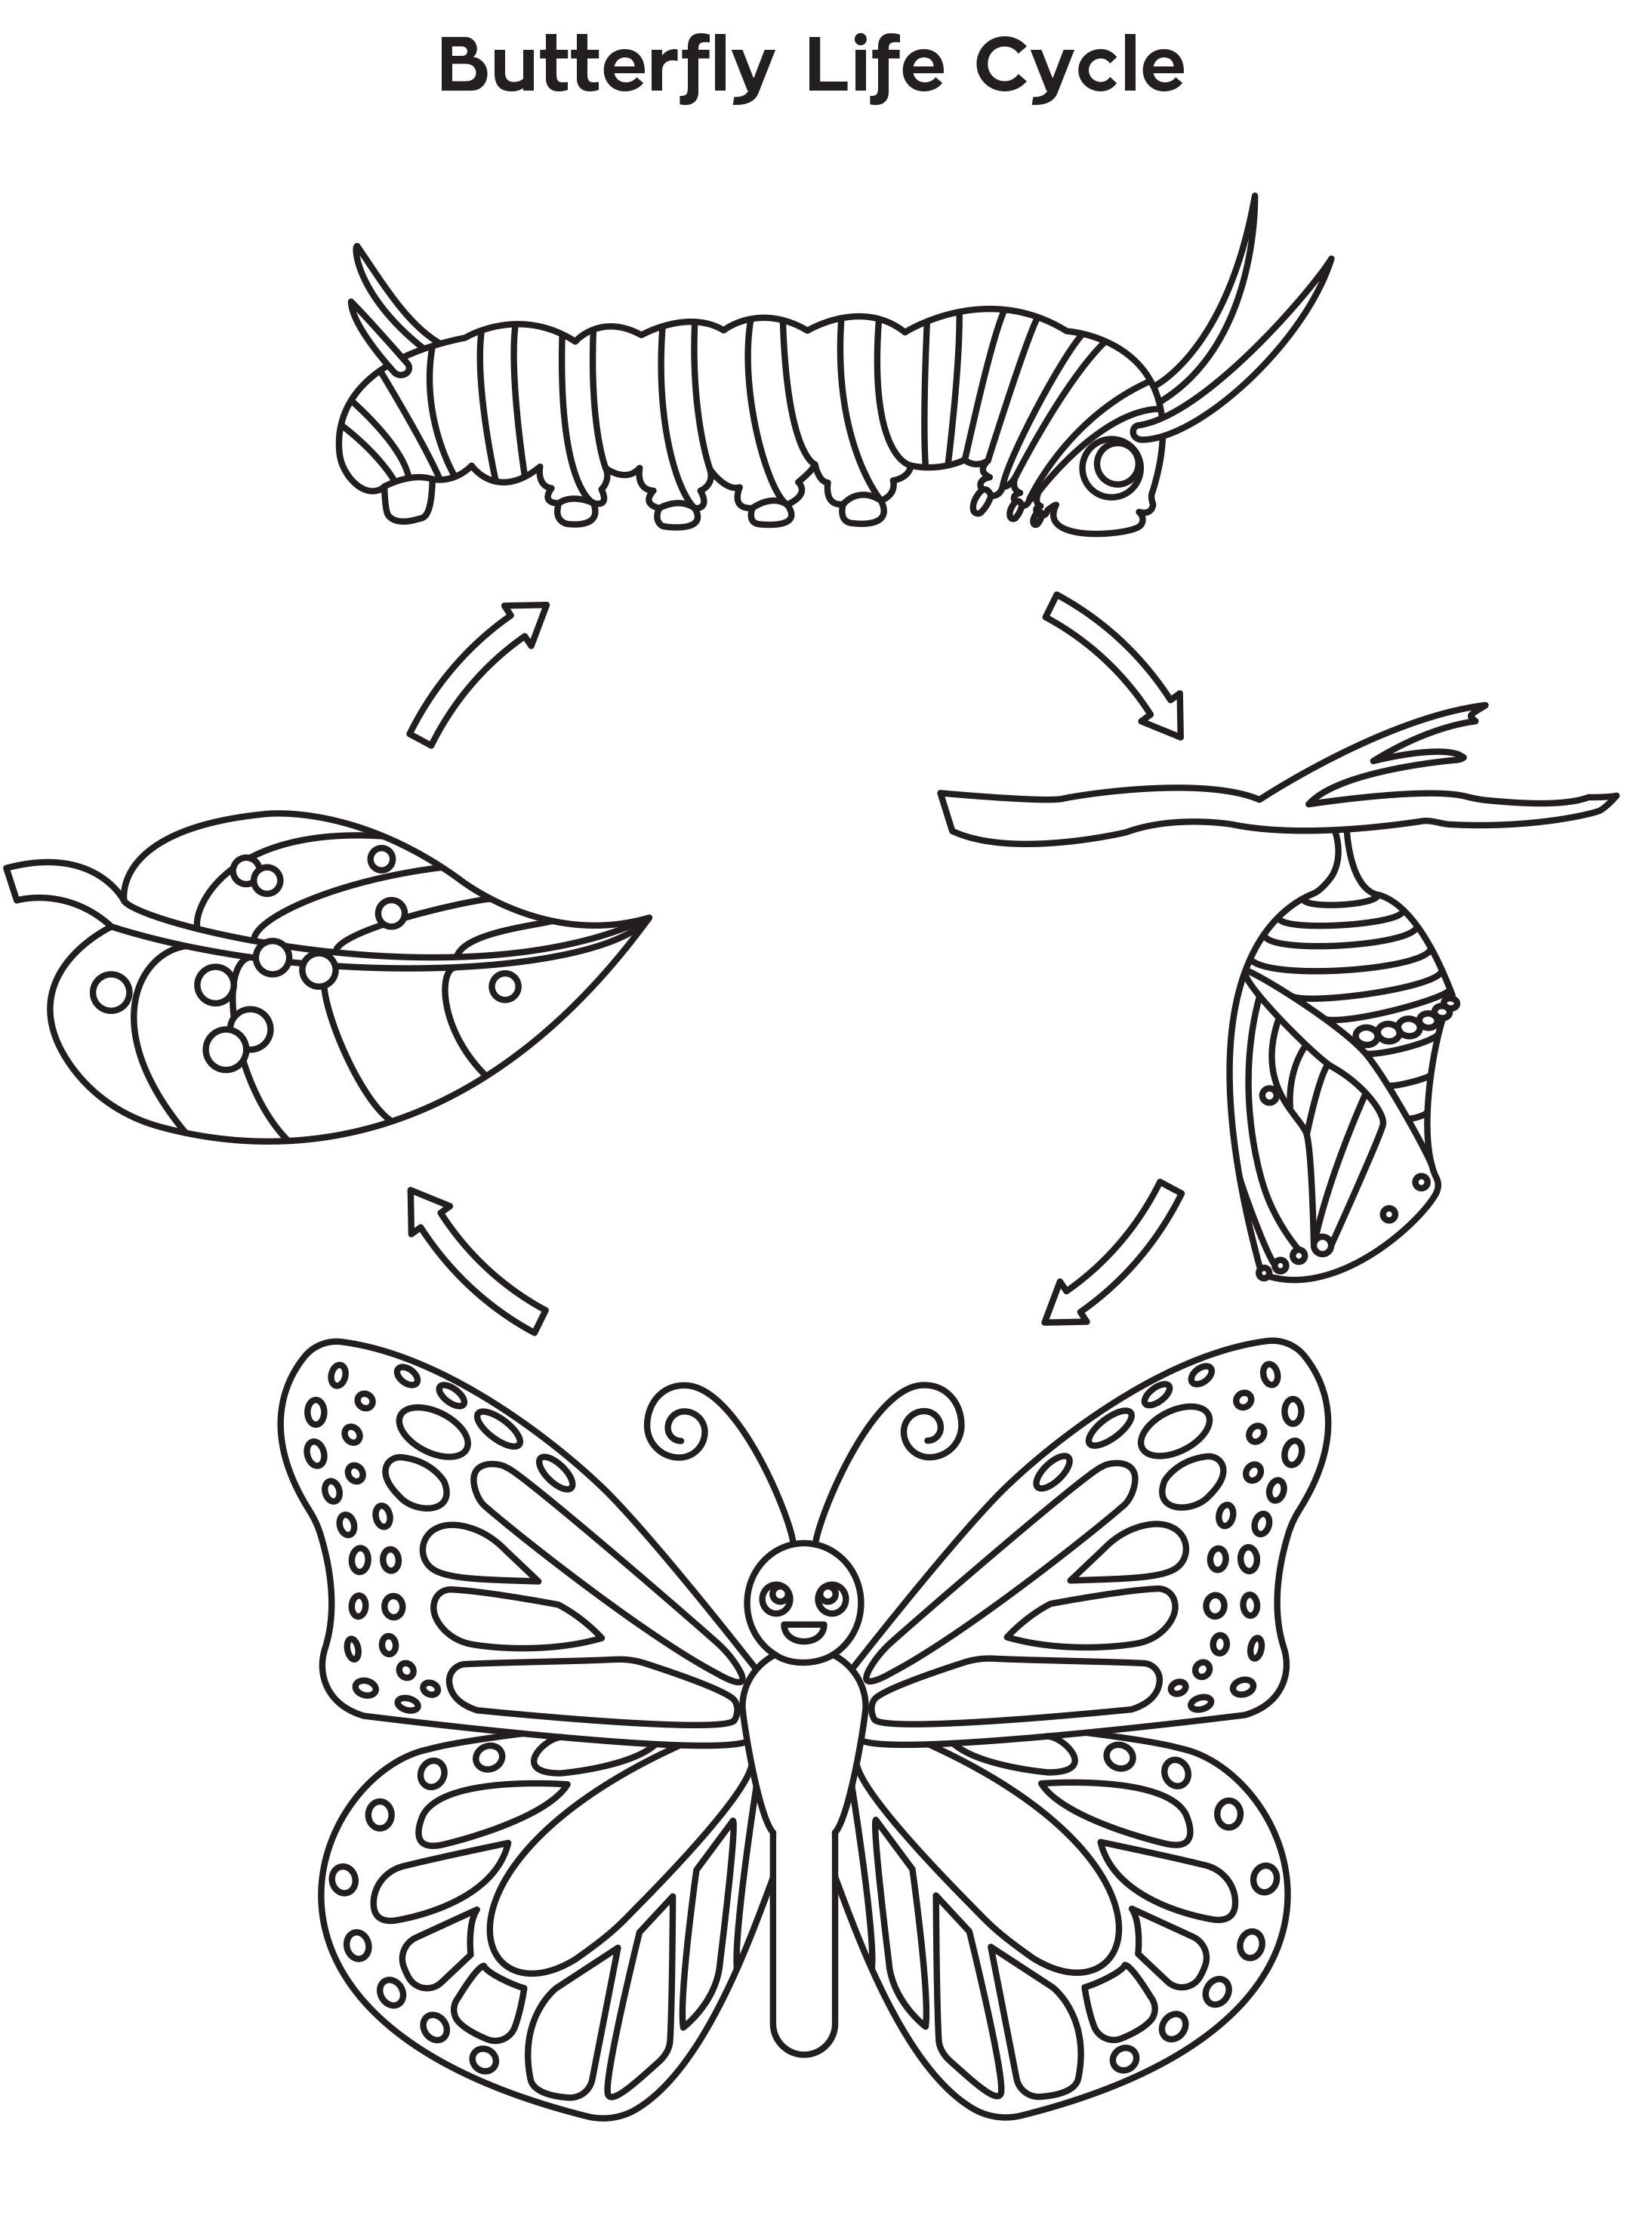 Butterfly Coloring Kit New Life Cycle A Butterfly Drawing